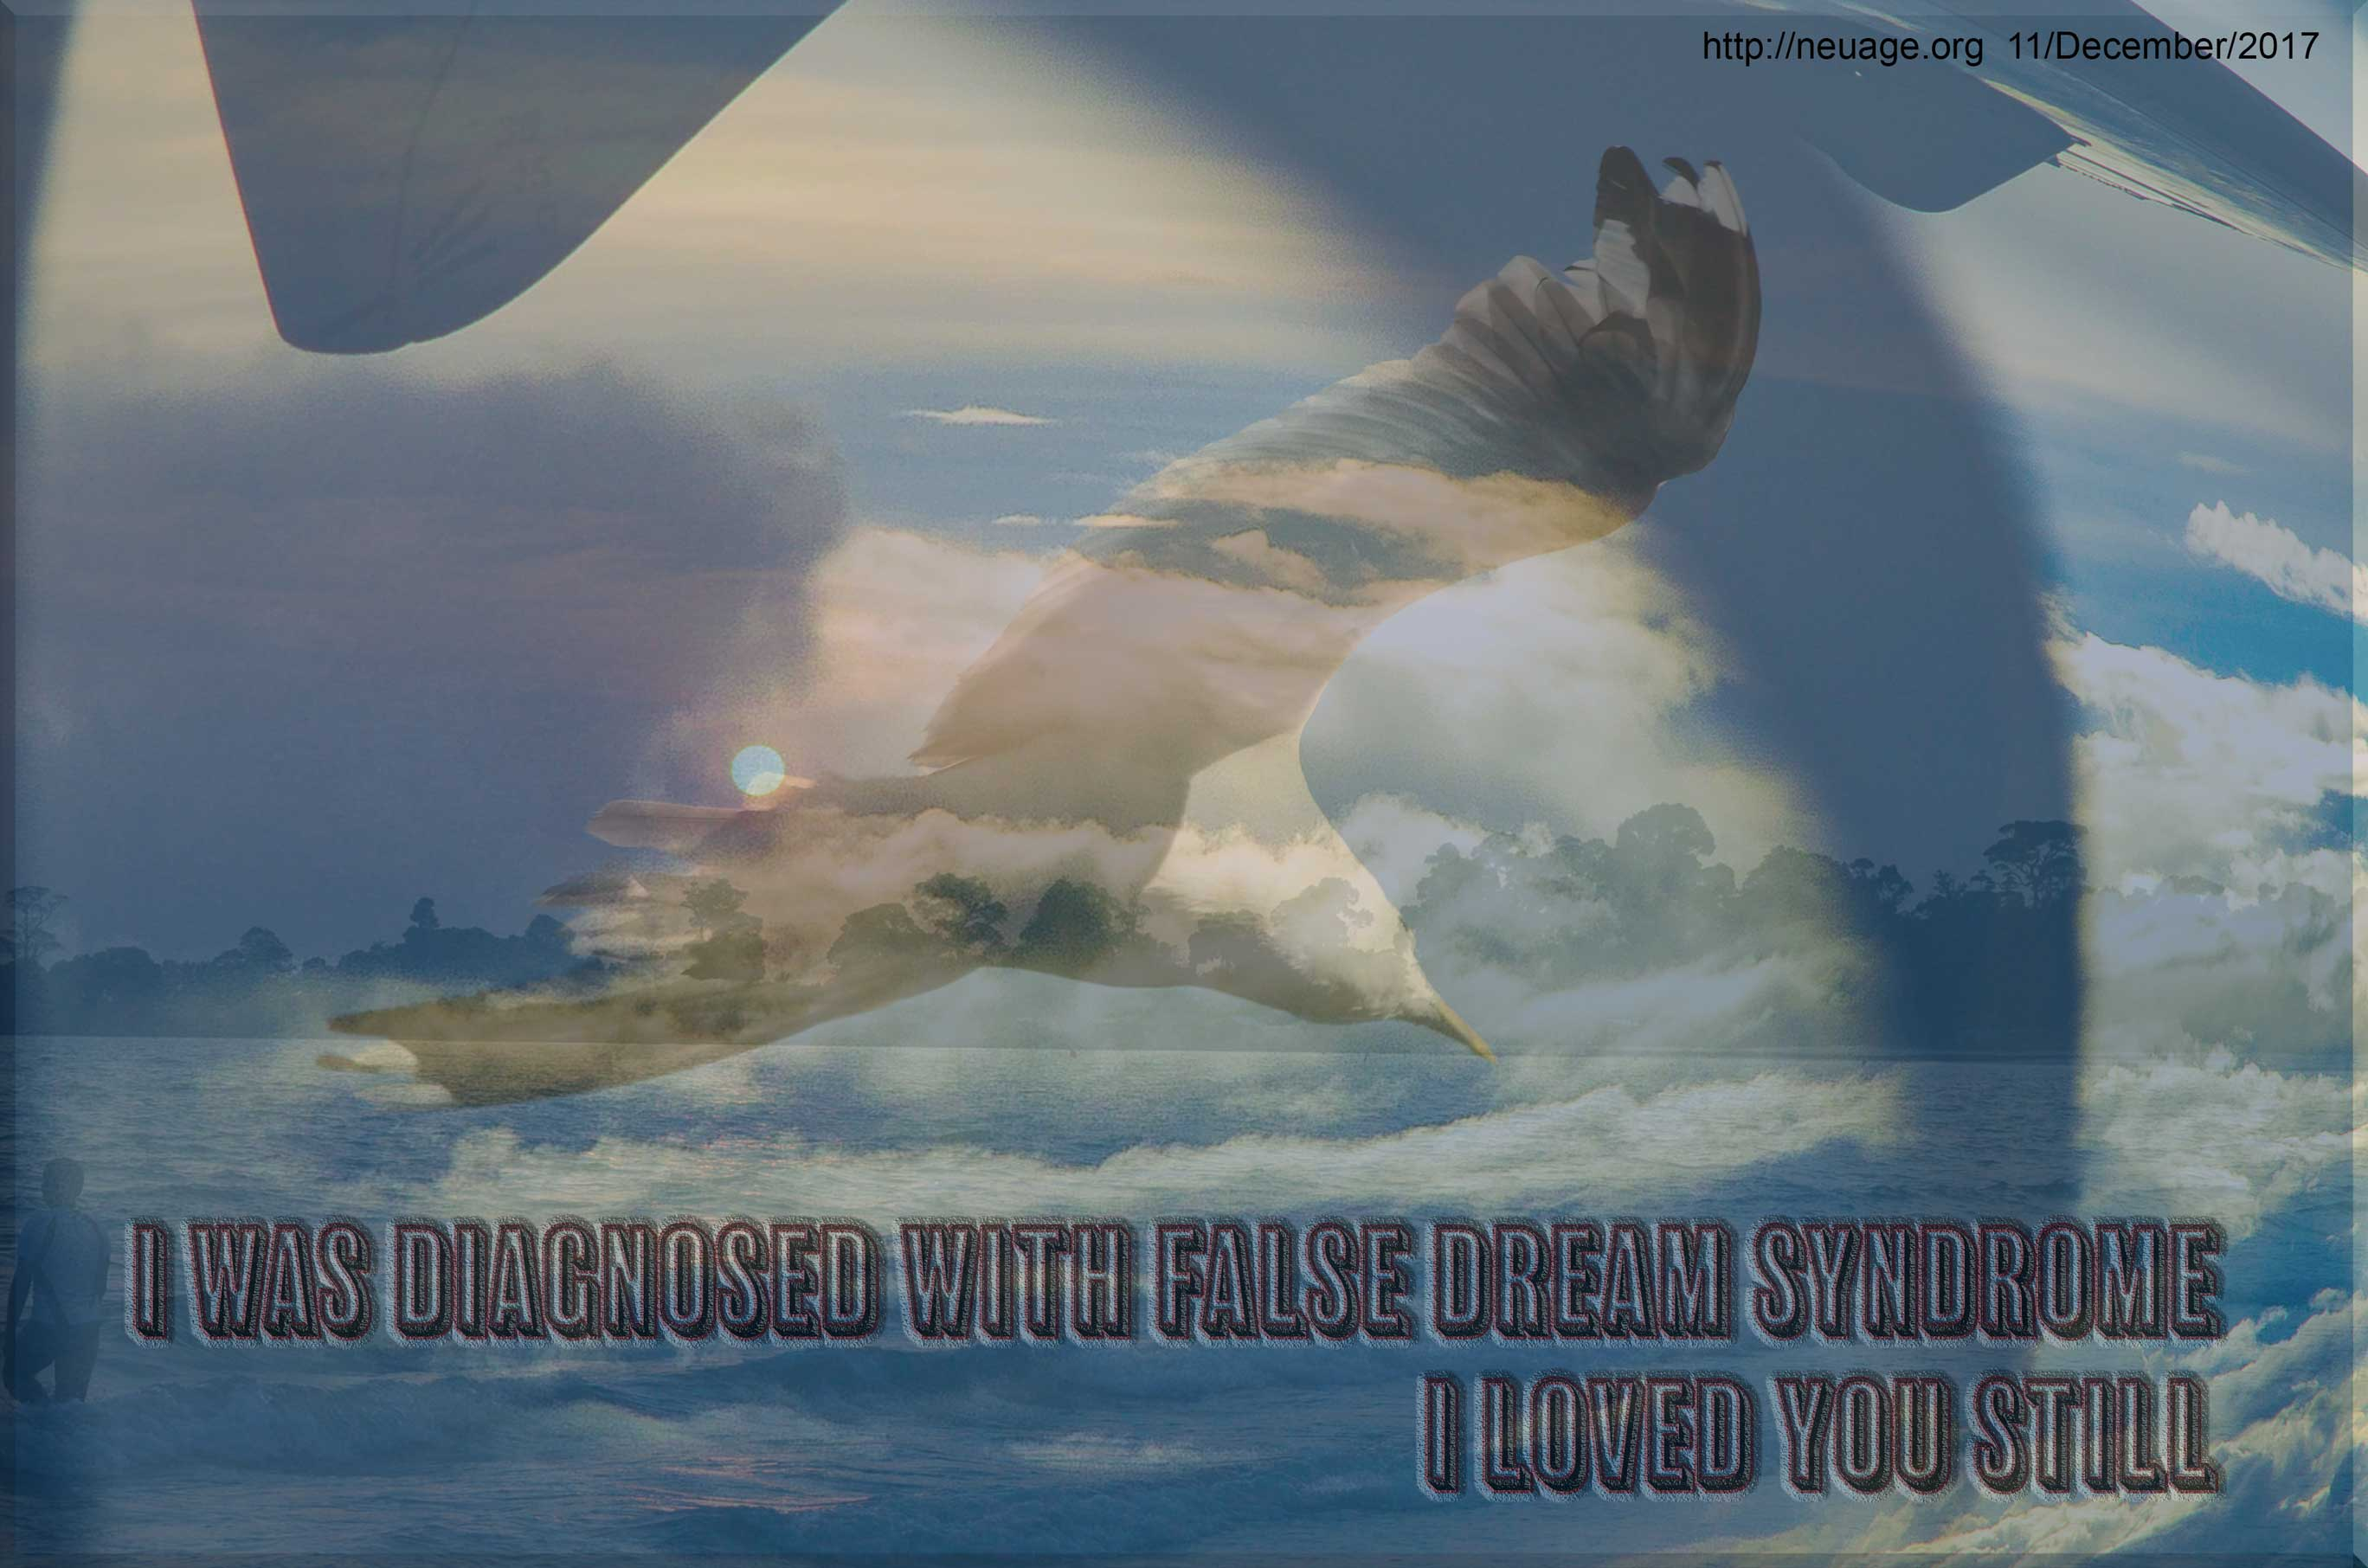 I was diagnosed with false dream syndrome I loved you still